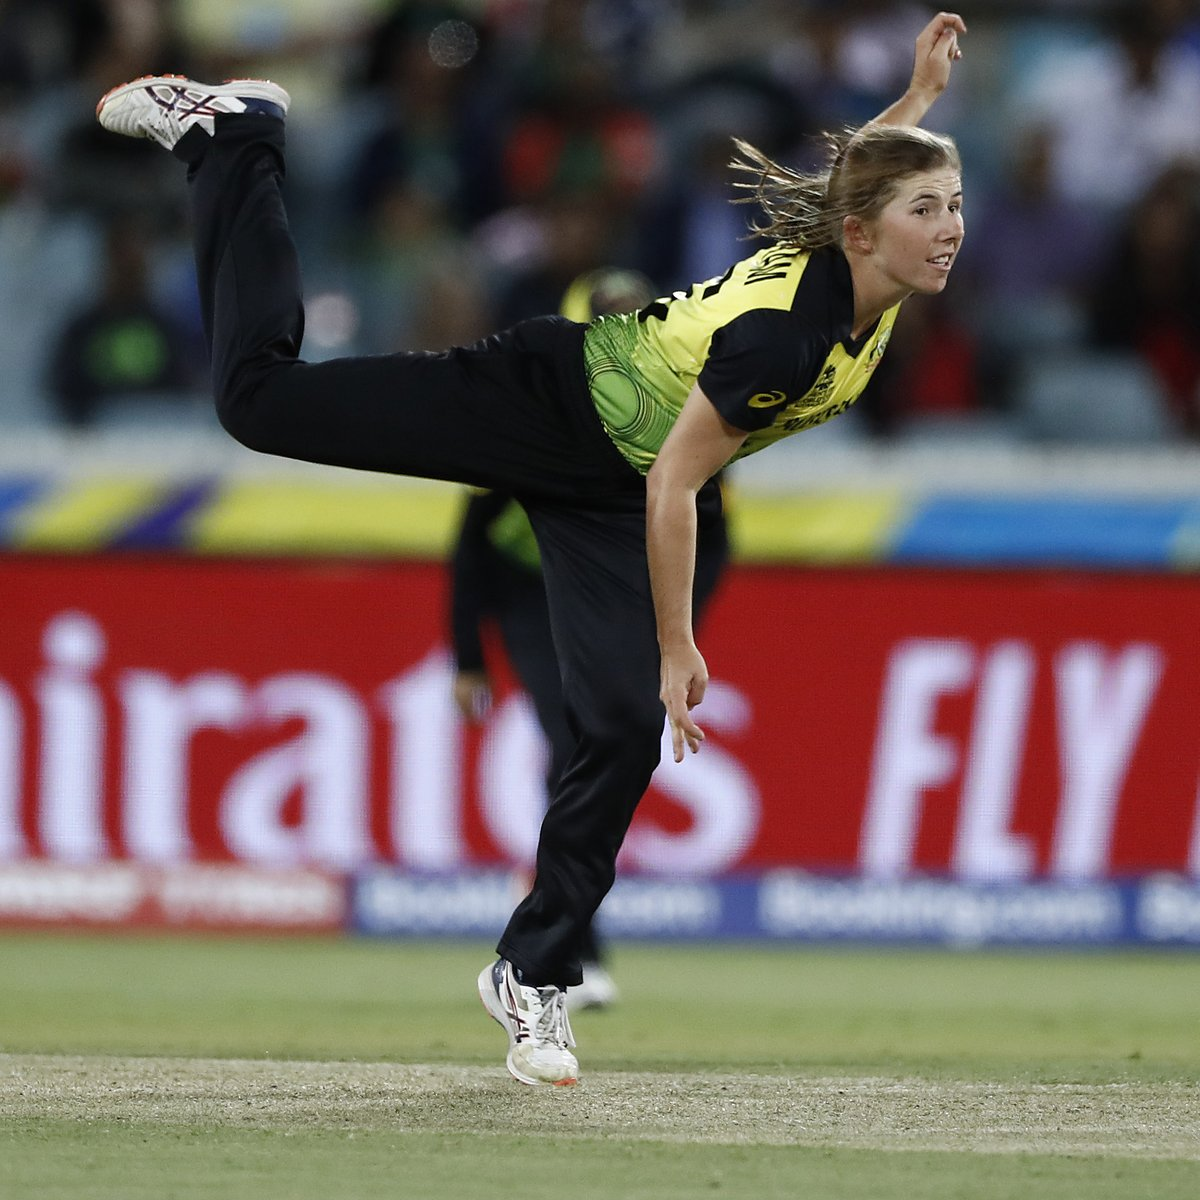 One of Australias most exciting talents and a two-time T20 World Cup champion by the age of 21... Happy birthday Georgia 🐺 Wareham!